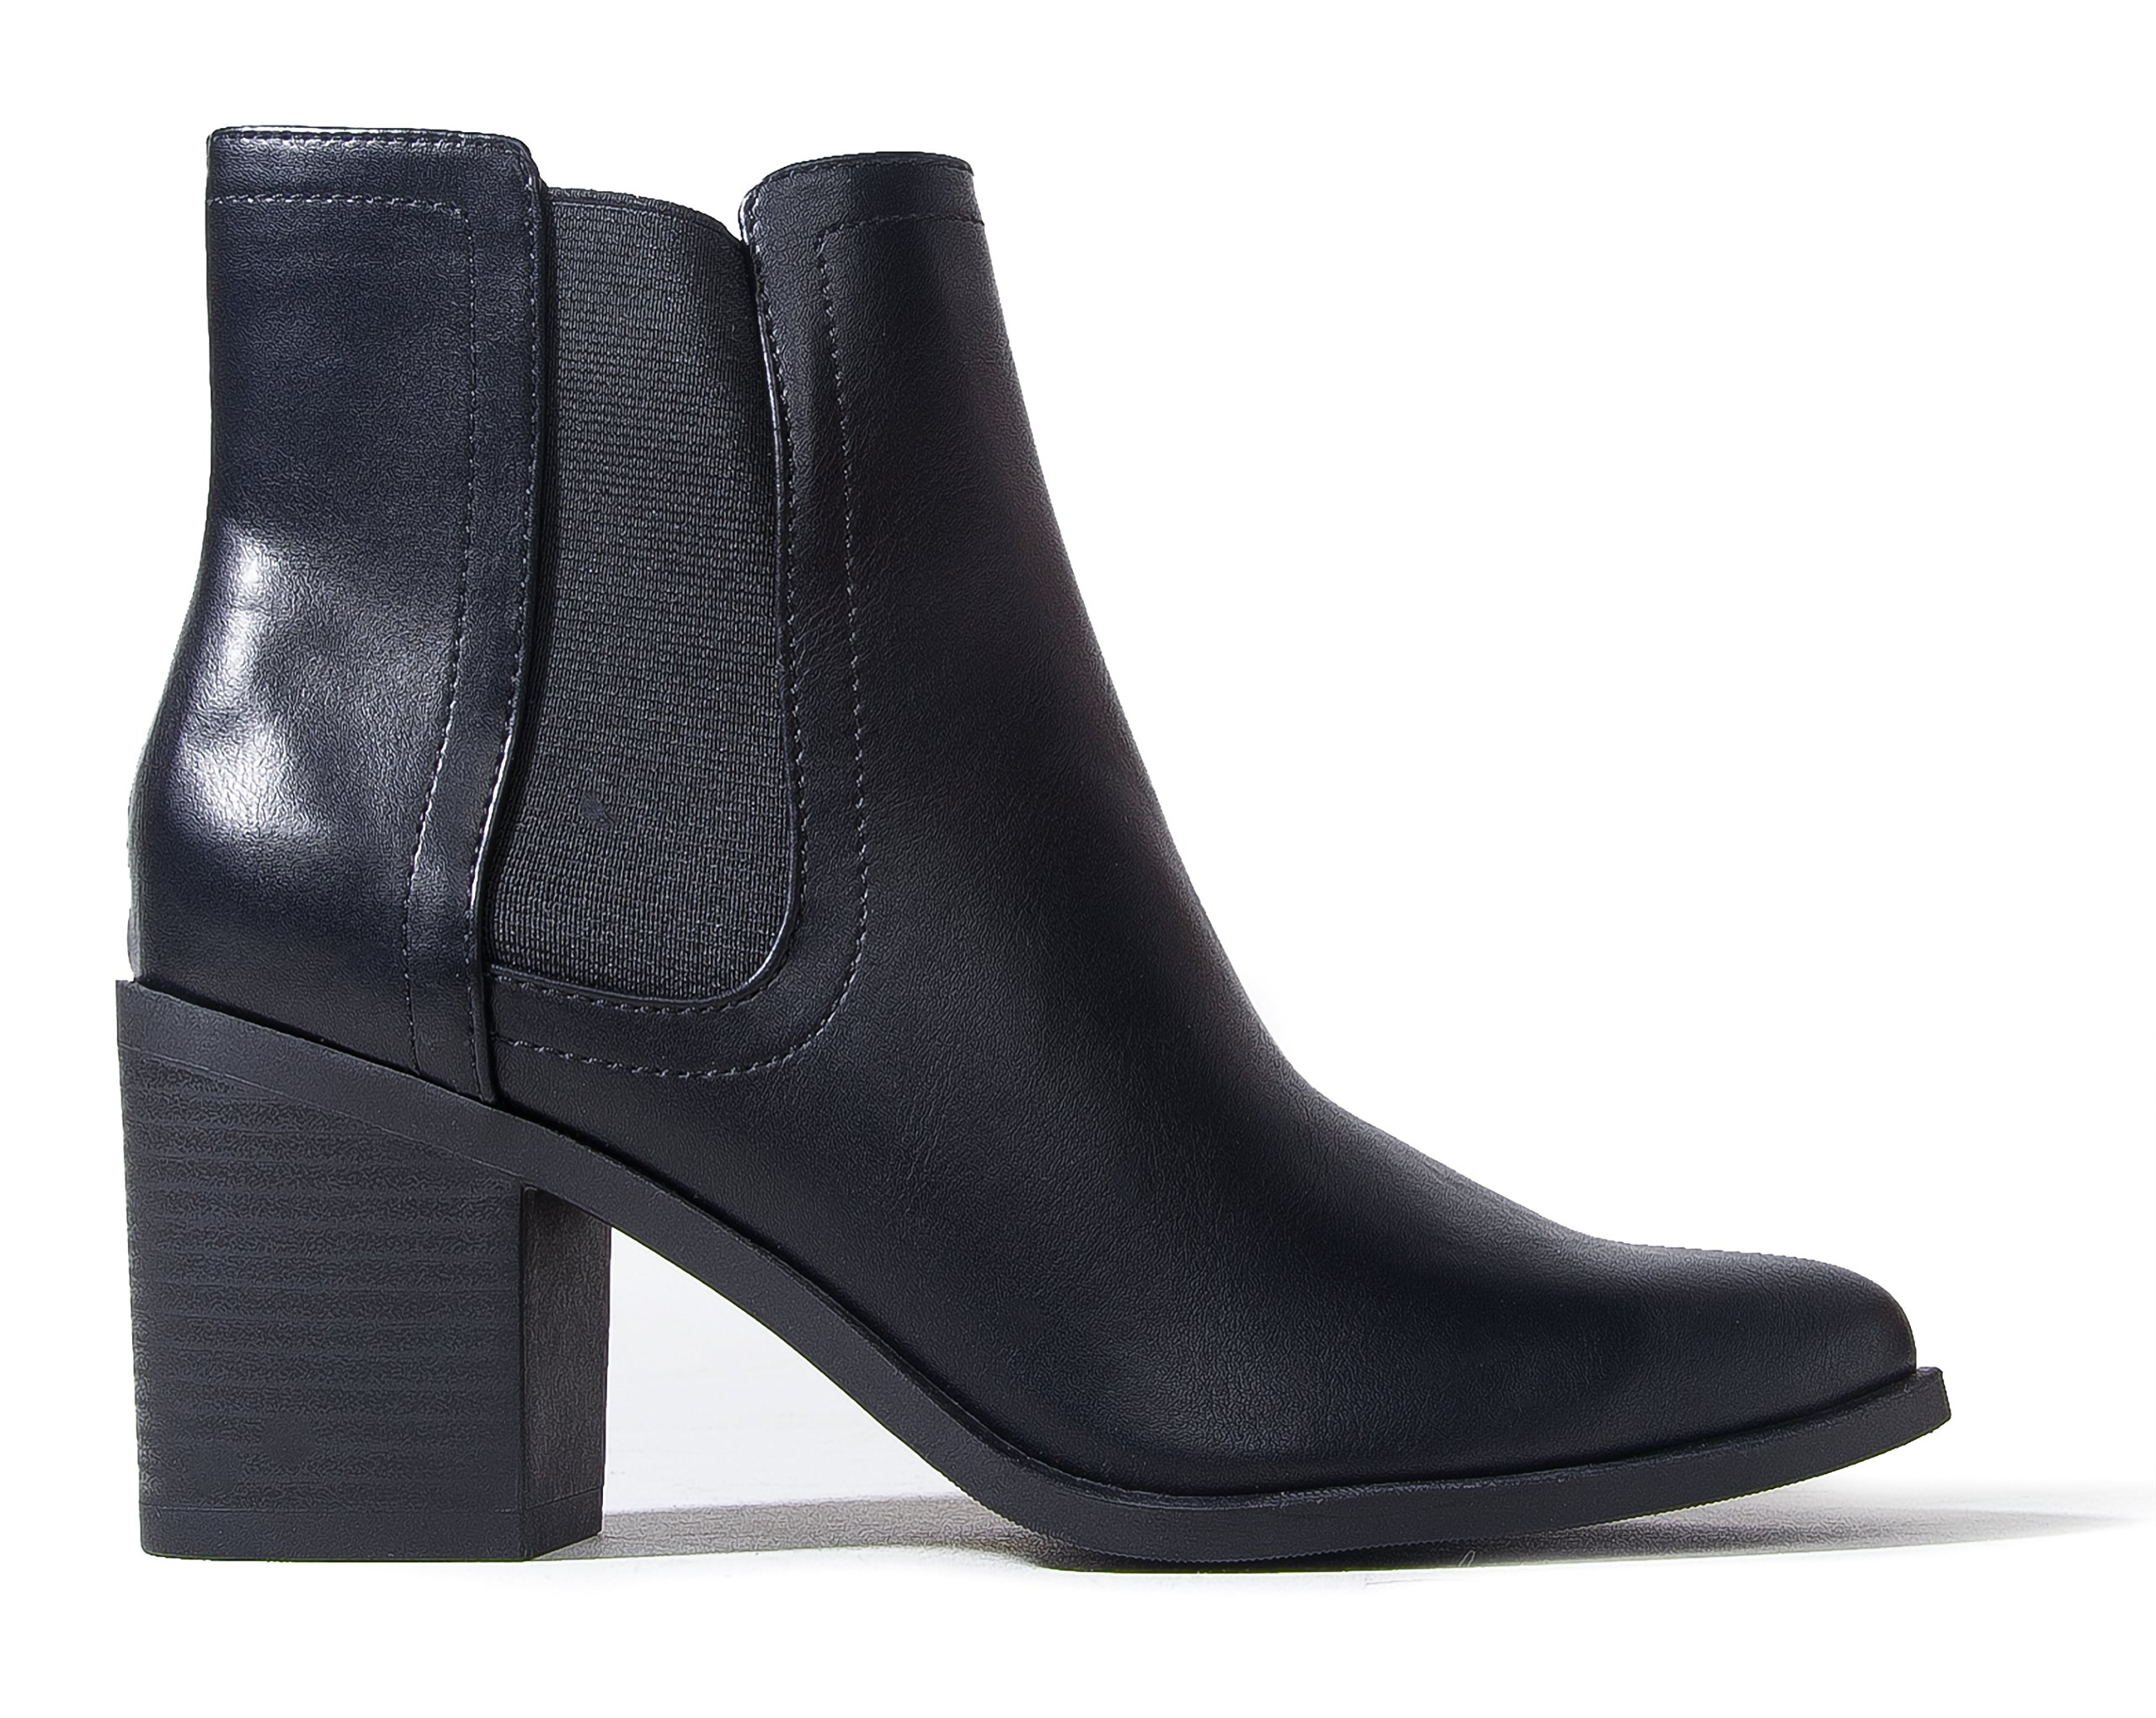 J. Adams Andi Chelsea Boot - Casual High Heel Pointed Toe Slip On Ankle Bootie